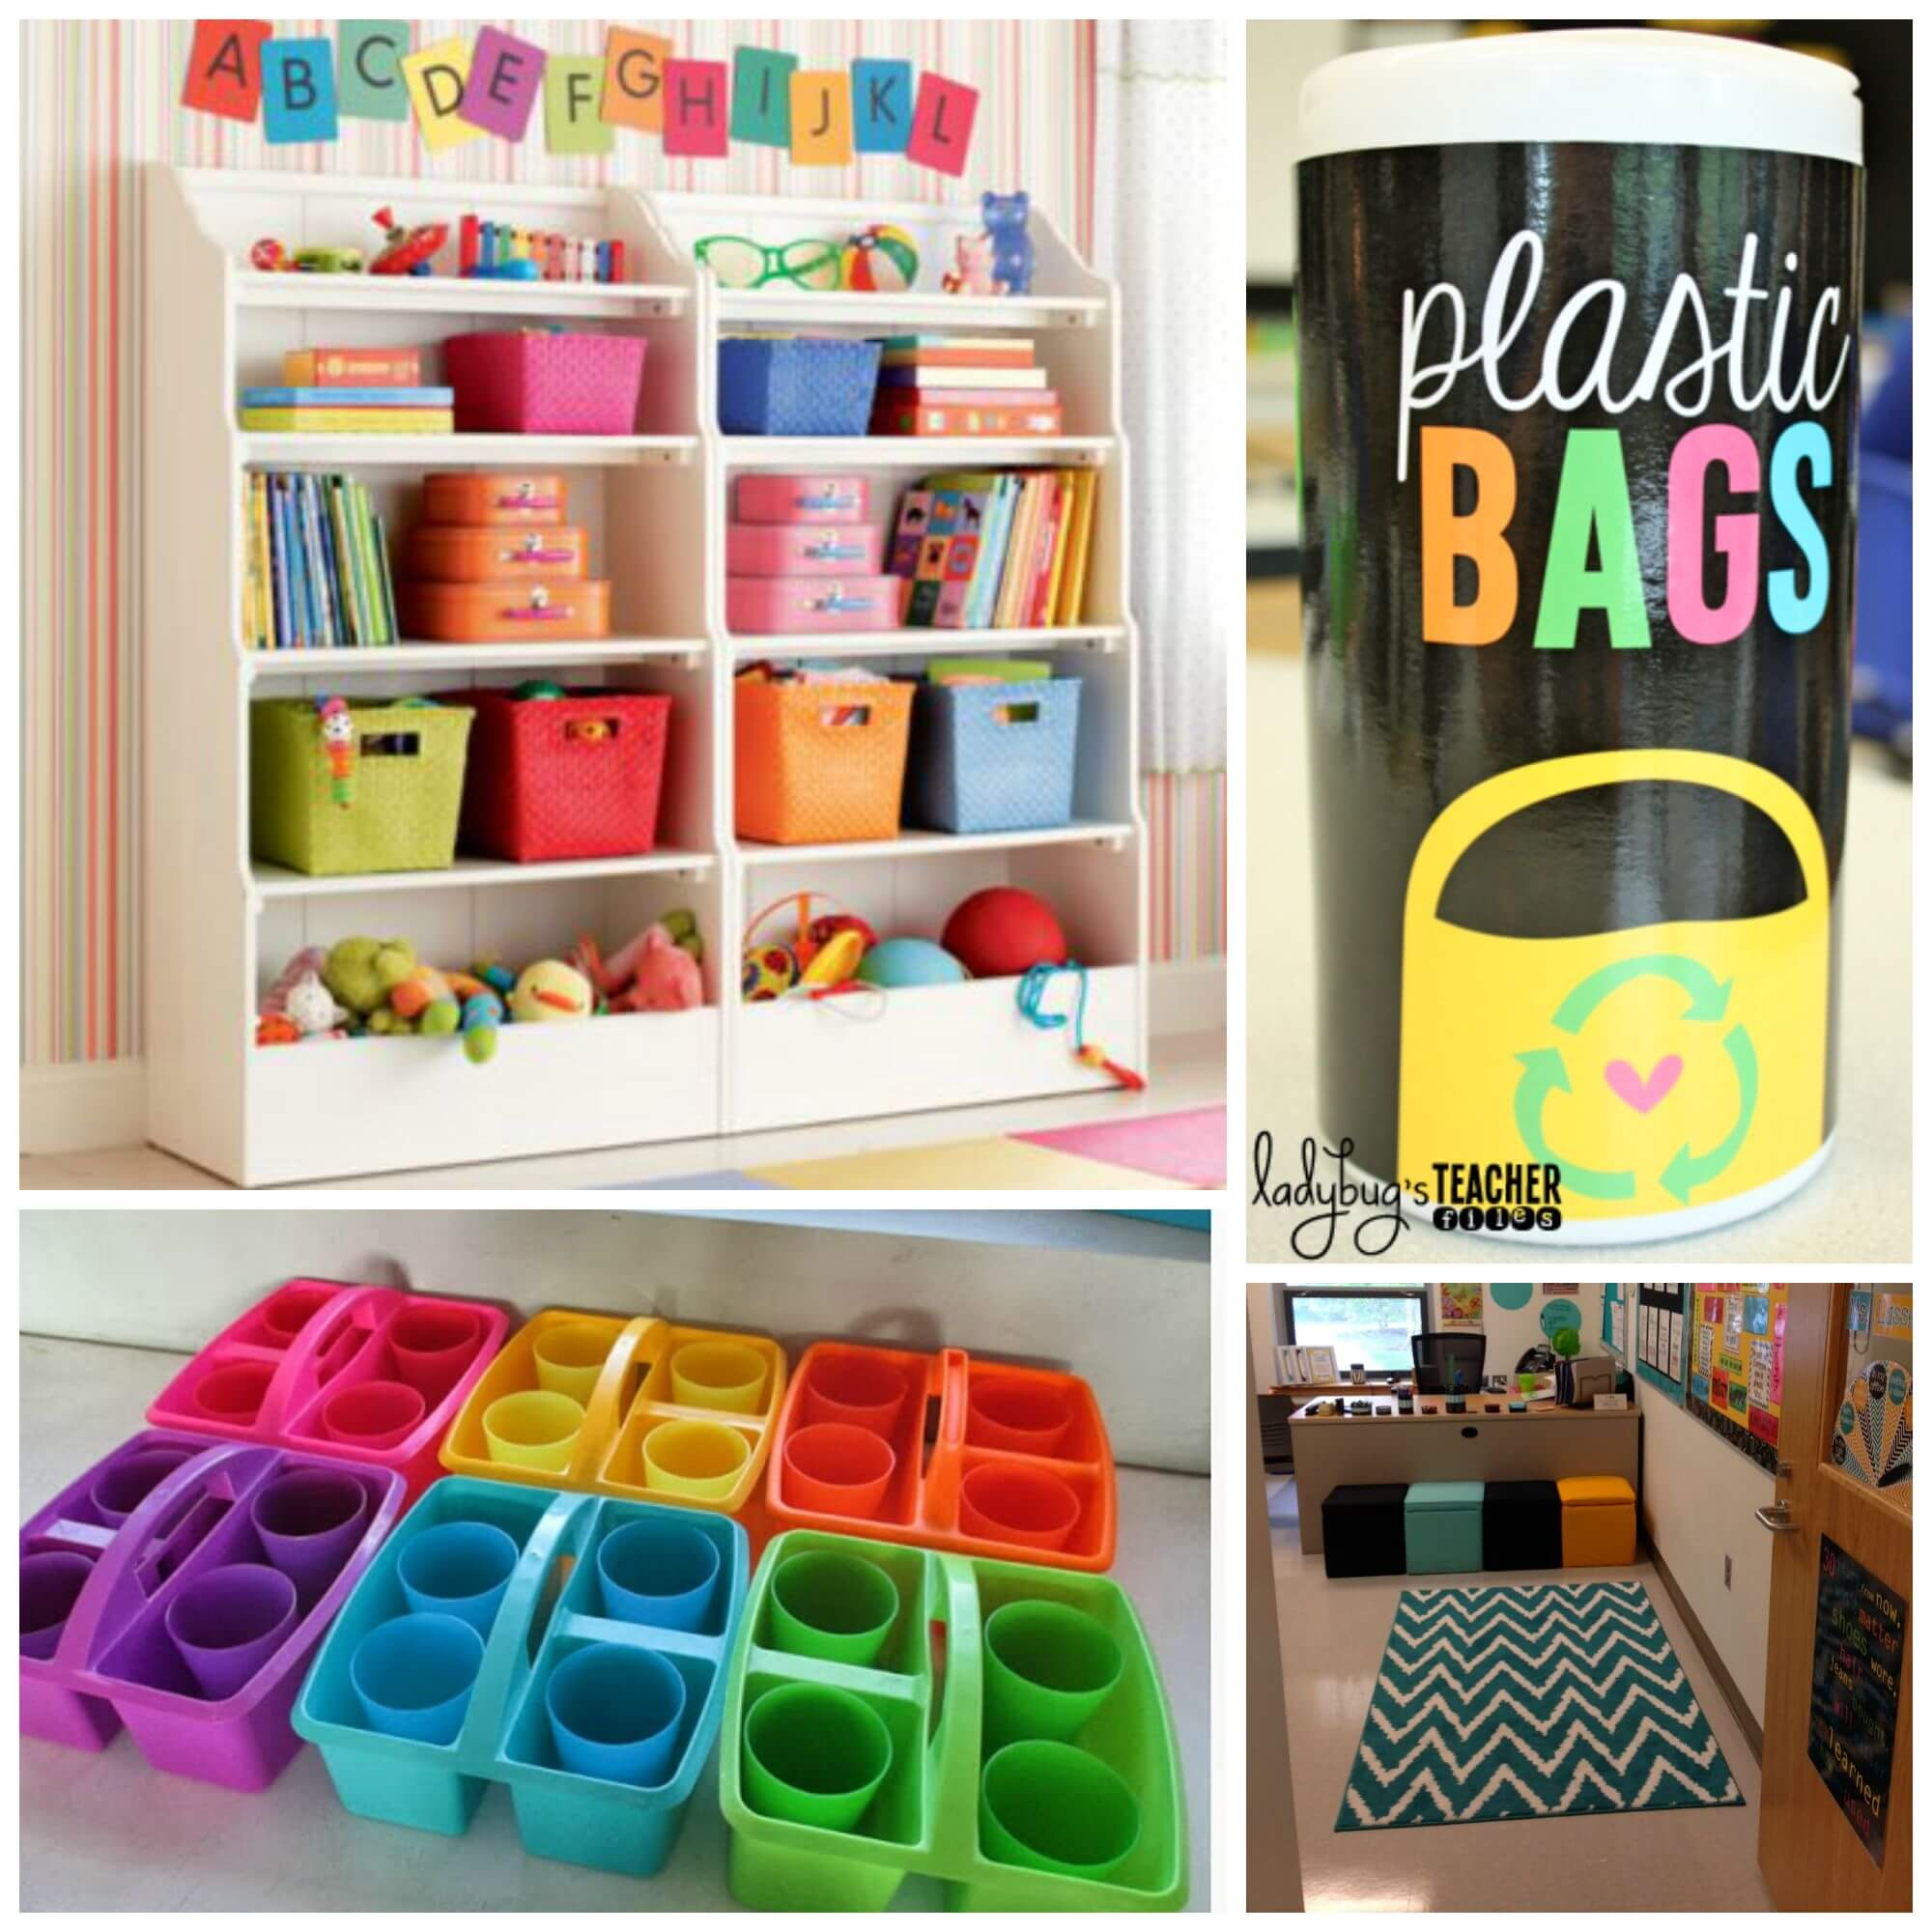 Decorating Elementary Classrooms ~ Inspiring classroom decoration ideas playdough to plato